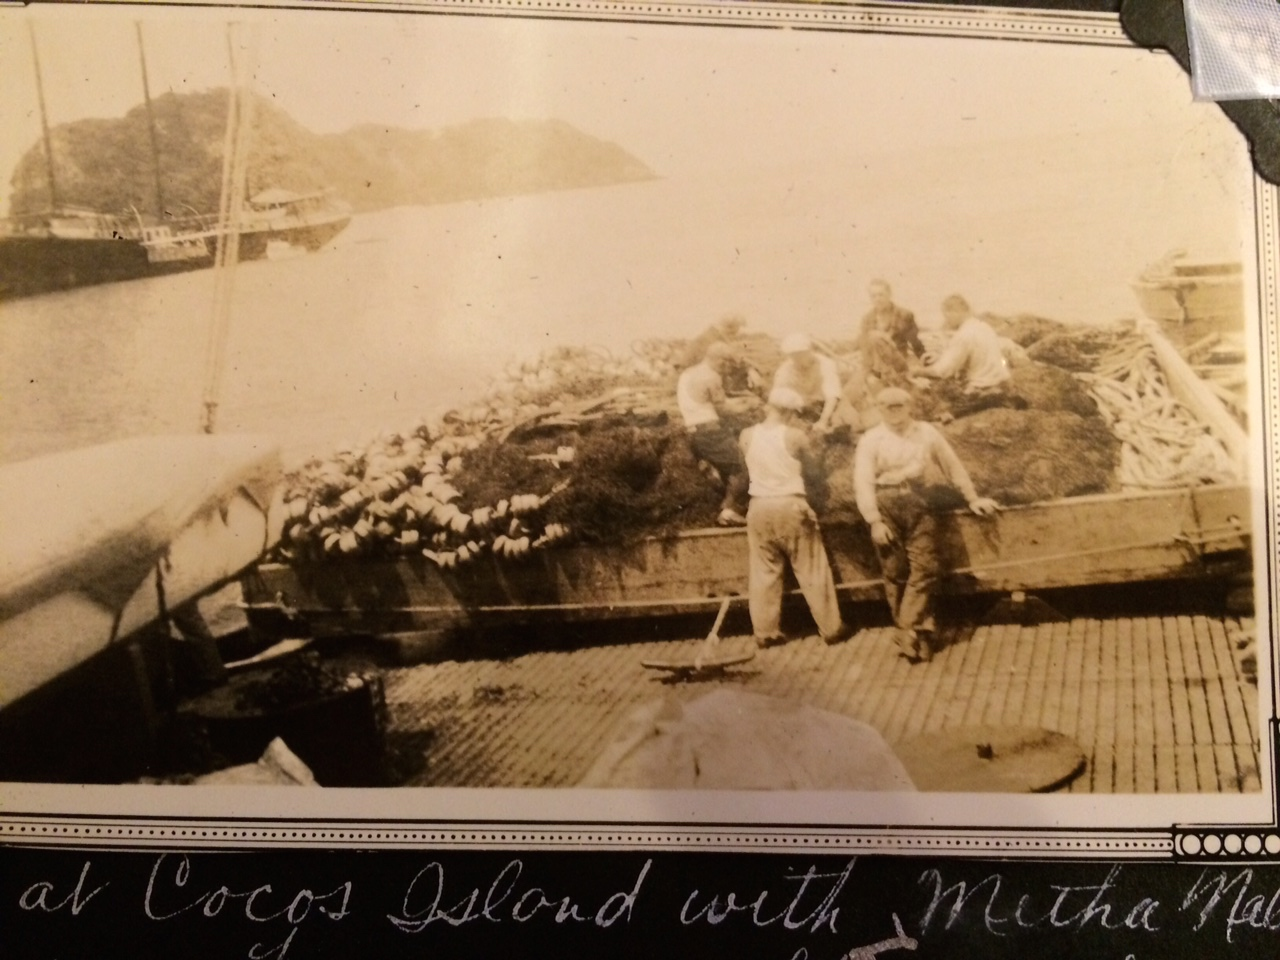 My grandfather and fellow fishermen off the coast of South America.